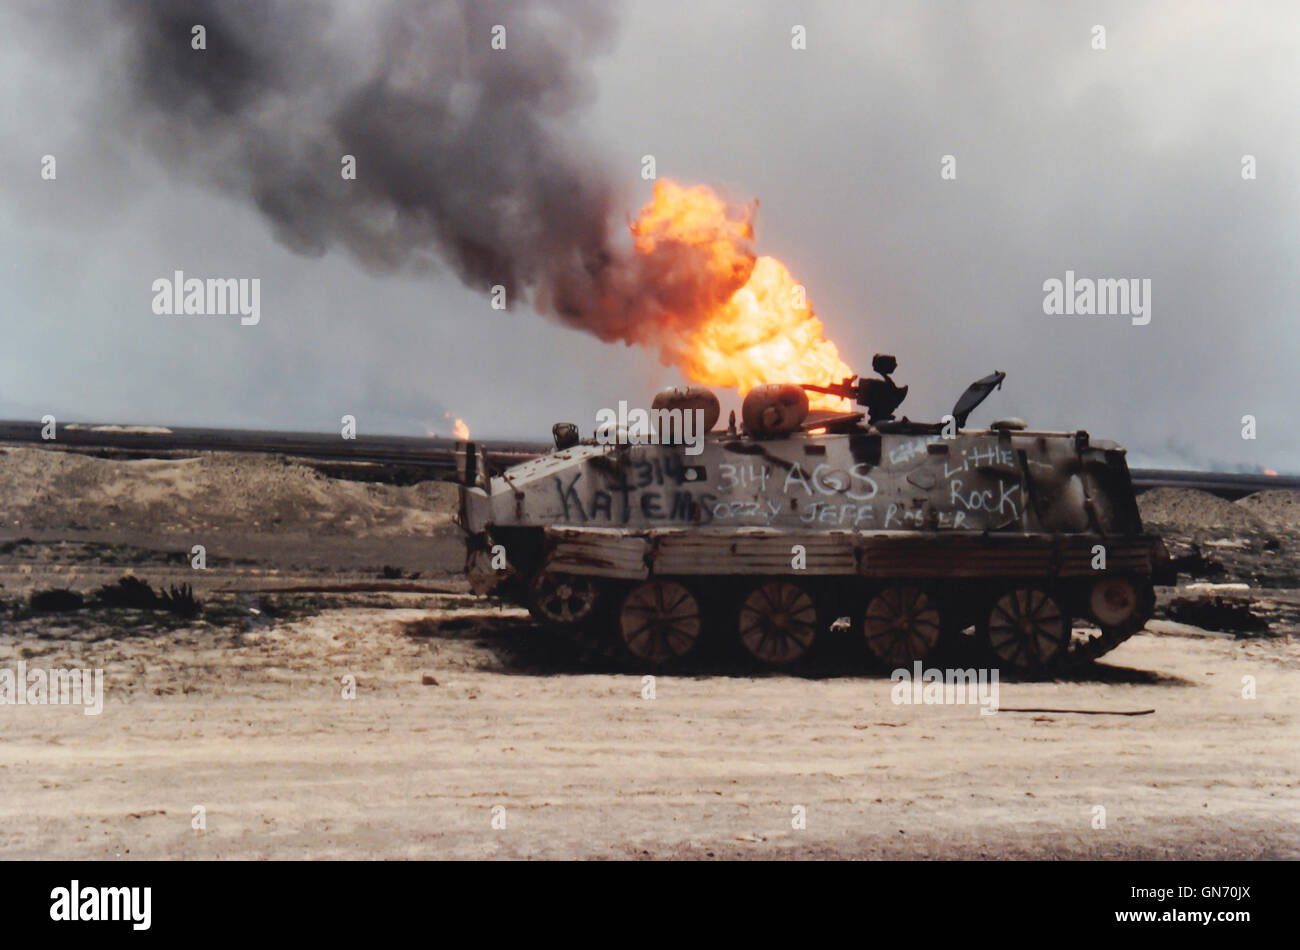 Kuwait City, Kuwait - April 1991 :  Damaged tank on road with burning oil fire from Persian Gulf War. - Stock Image